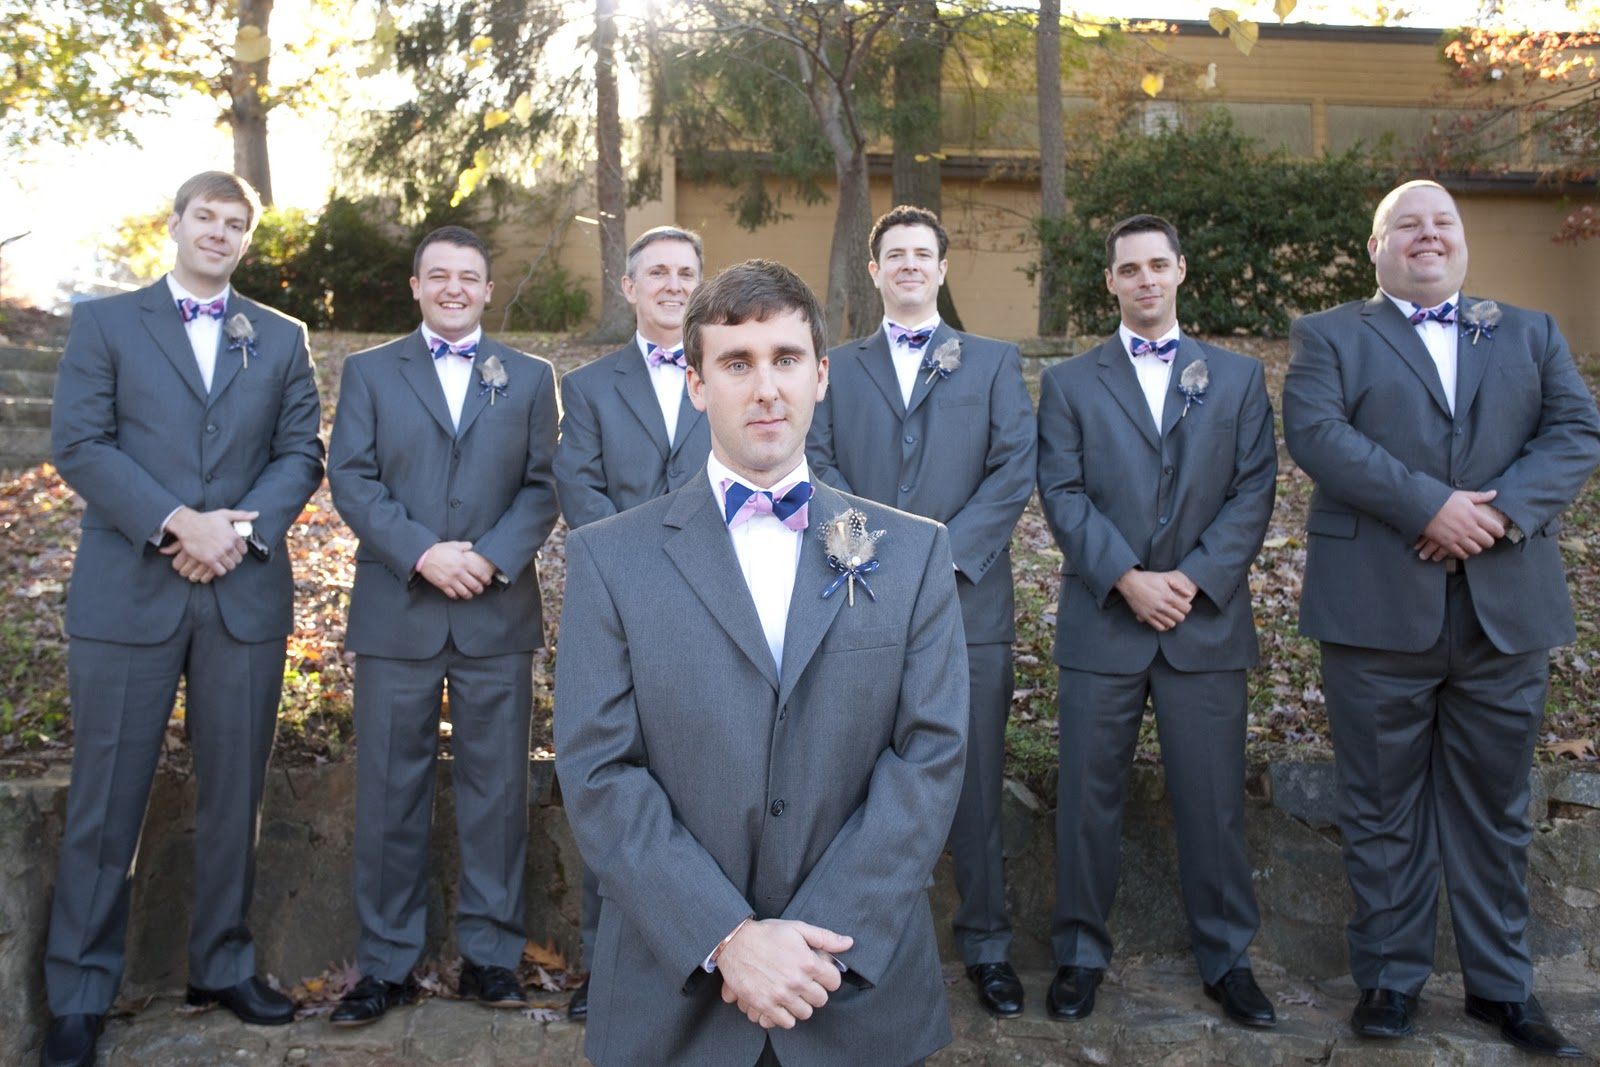 Hitched: Our Wedding Party - Carolina Charm